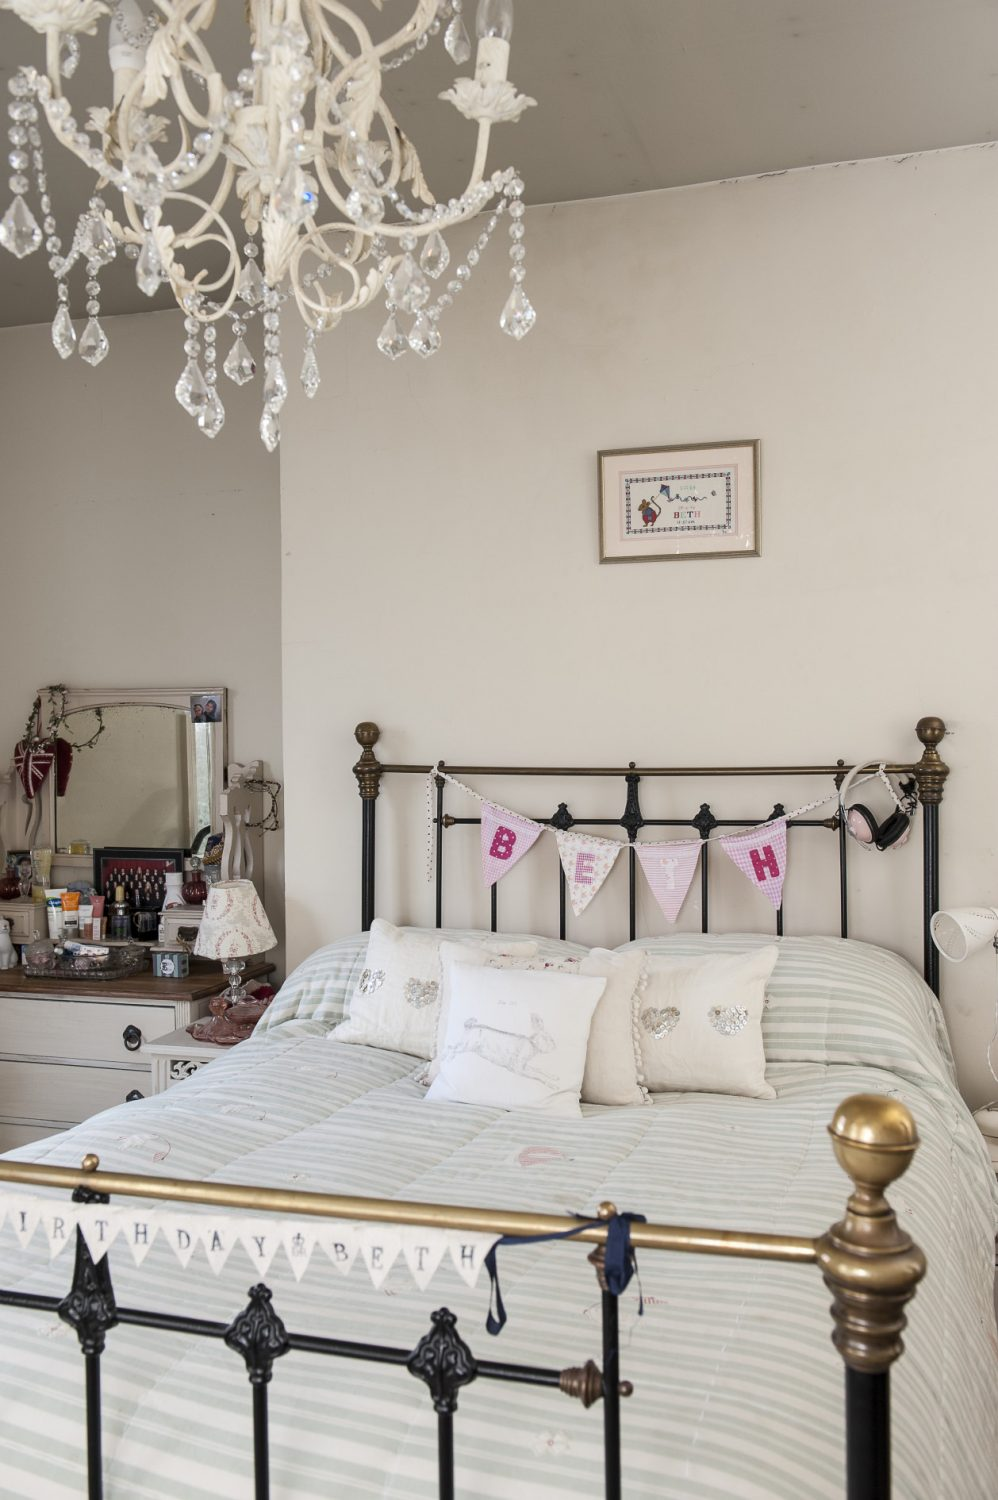 Daughter Beth's room is graced by a brass and iron bedstead and glass chandelier